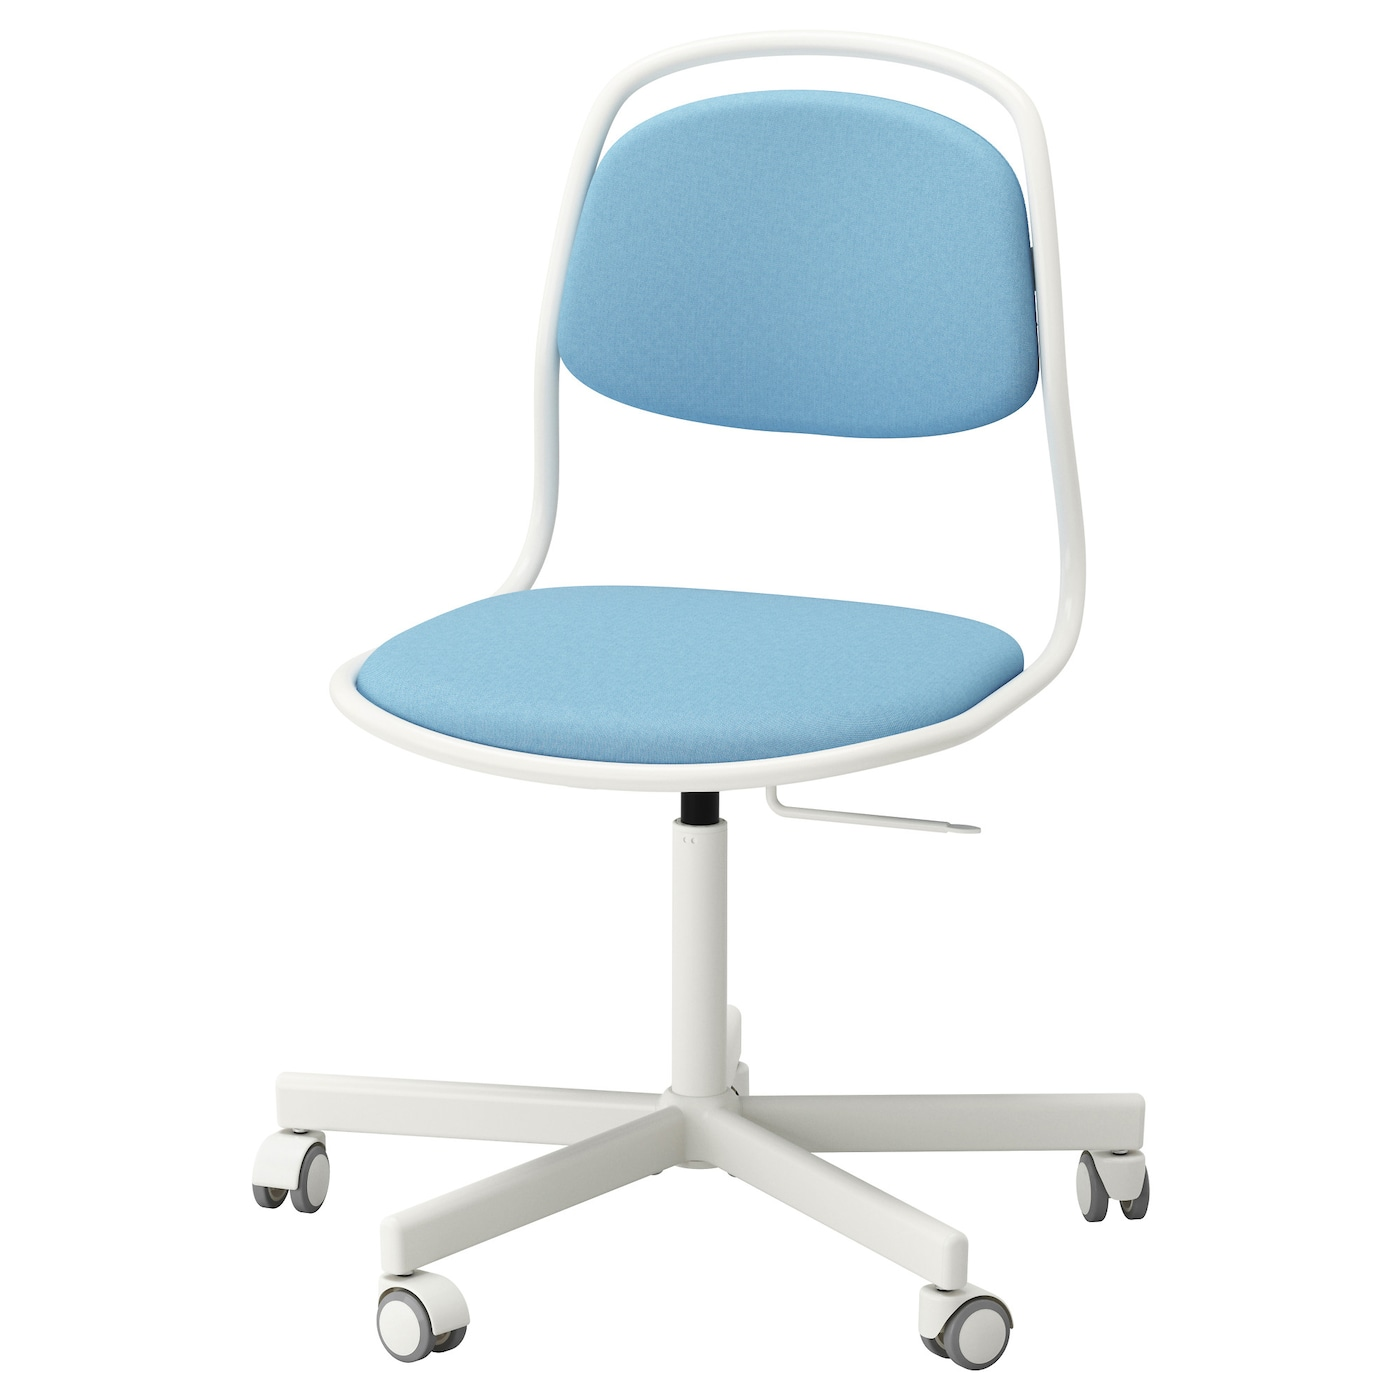 Rfj ll sporren swivel chair white vissle light blue ikea for Ikea office desk chair